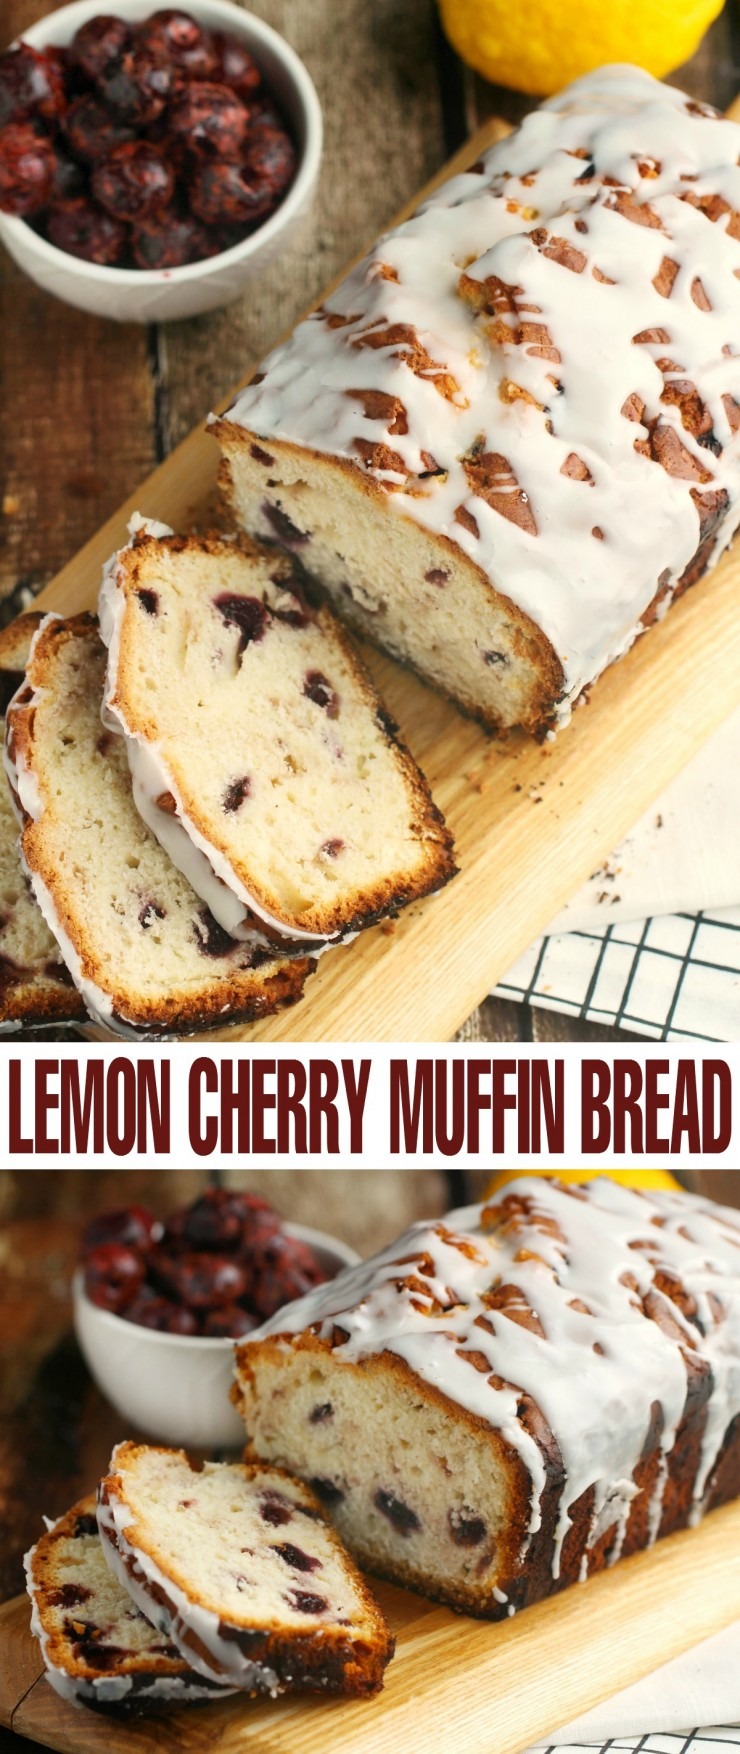 This Cherry-Lemon Muffin Bread is full of flavour and the same great texture you find in a muffin but with the convenience of a quick bread. It is delicious for breakfast or really any time of the day.